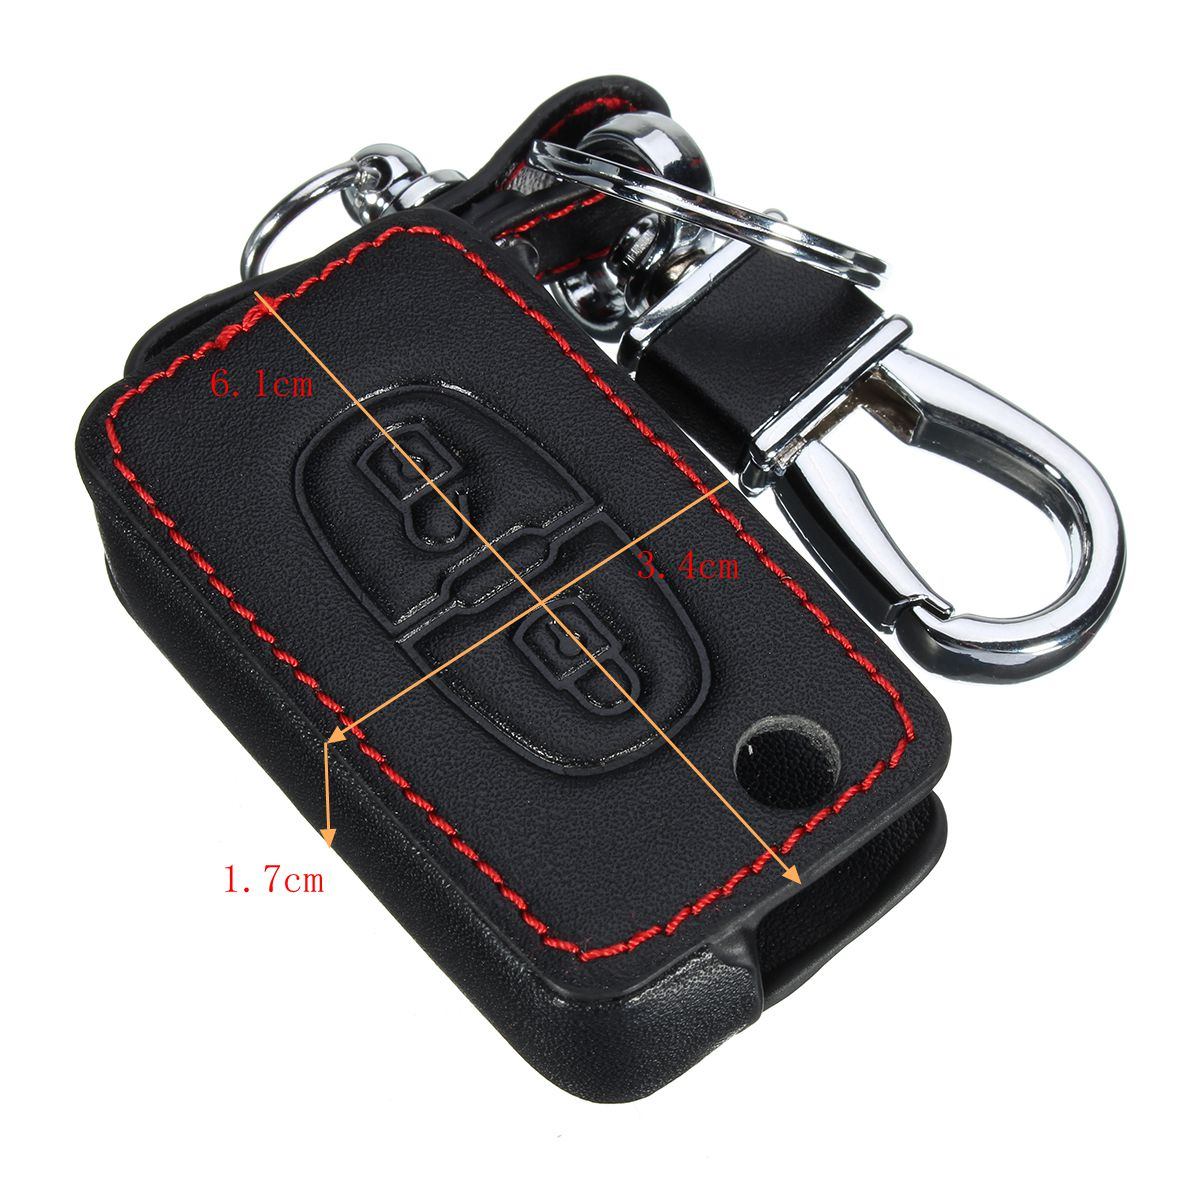 2 Button PU Leather Key Chain Case Cover for Peugeot 301 308S 408 508 2008 3008